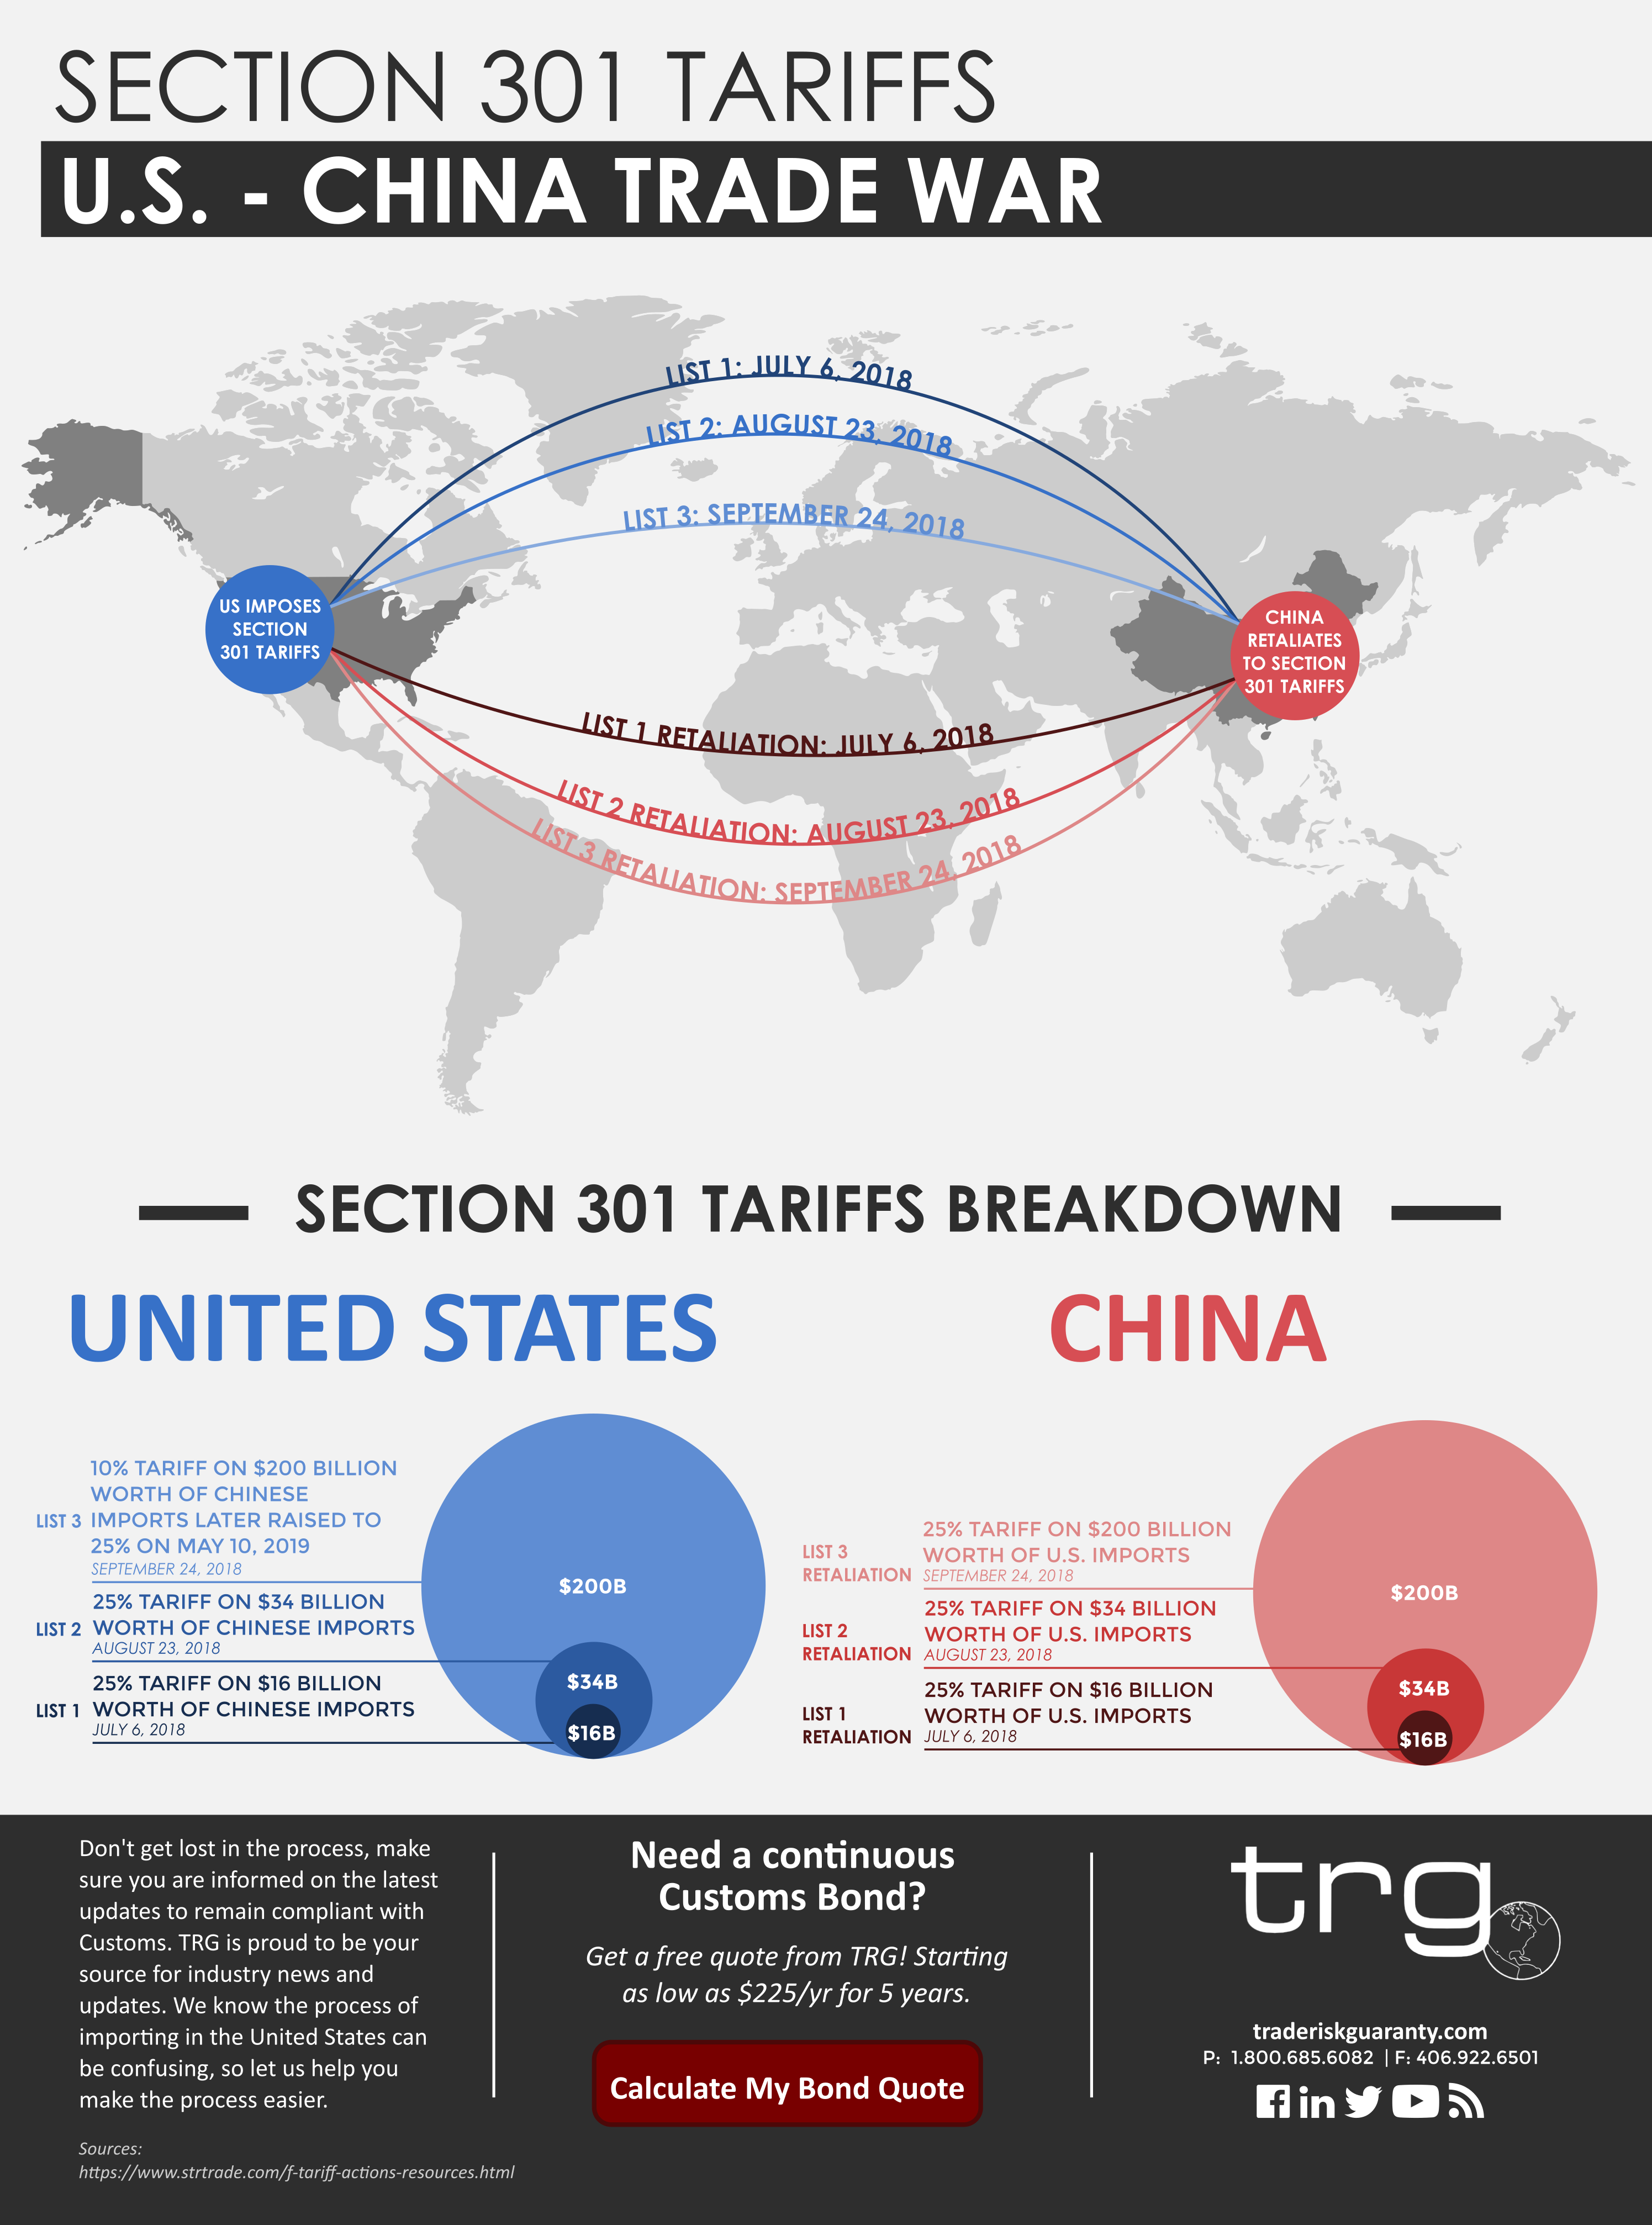 Trade Risk Guaranty provides an infographic of Section 301 tariffs.